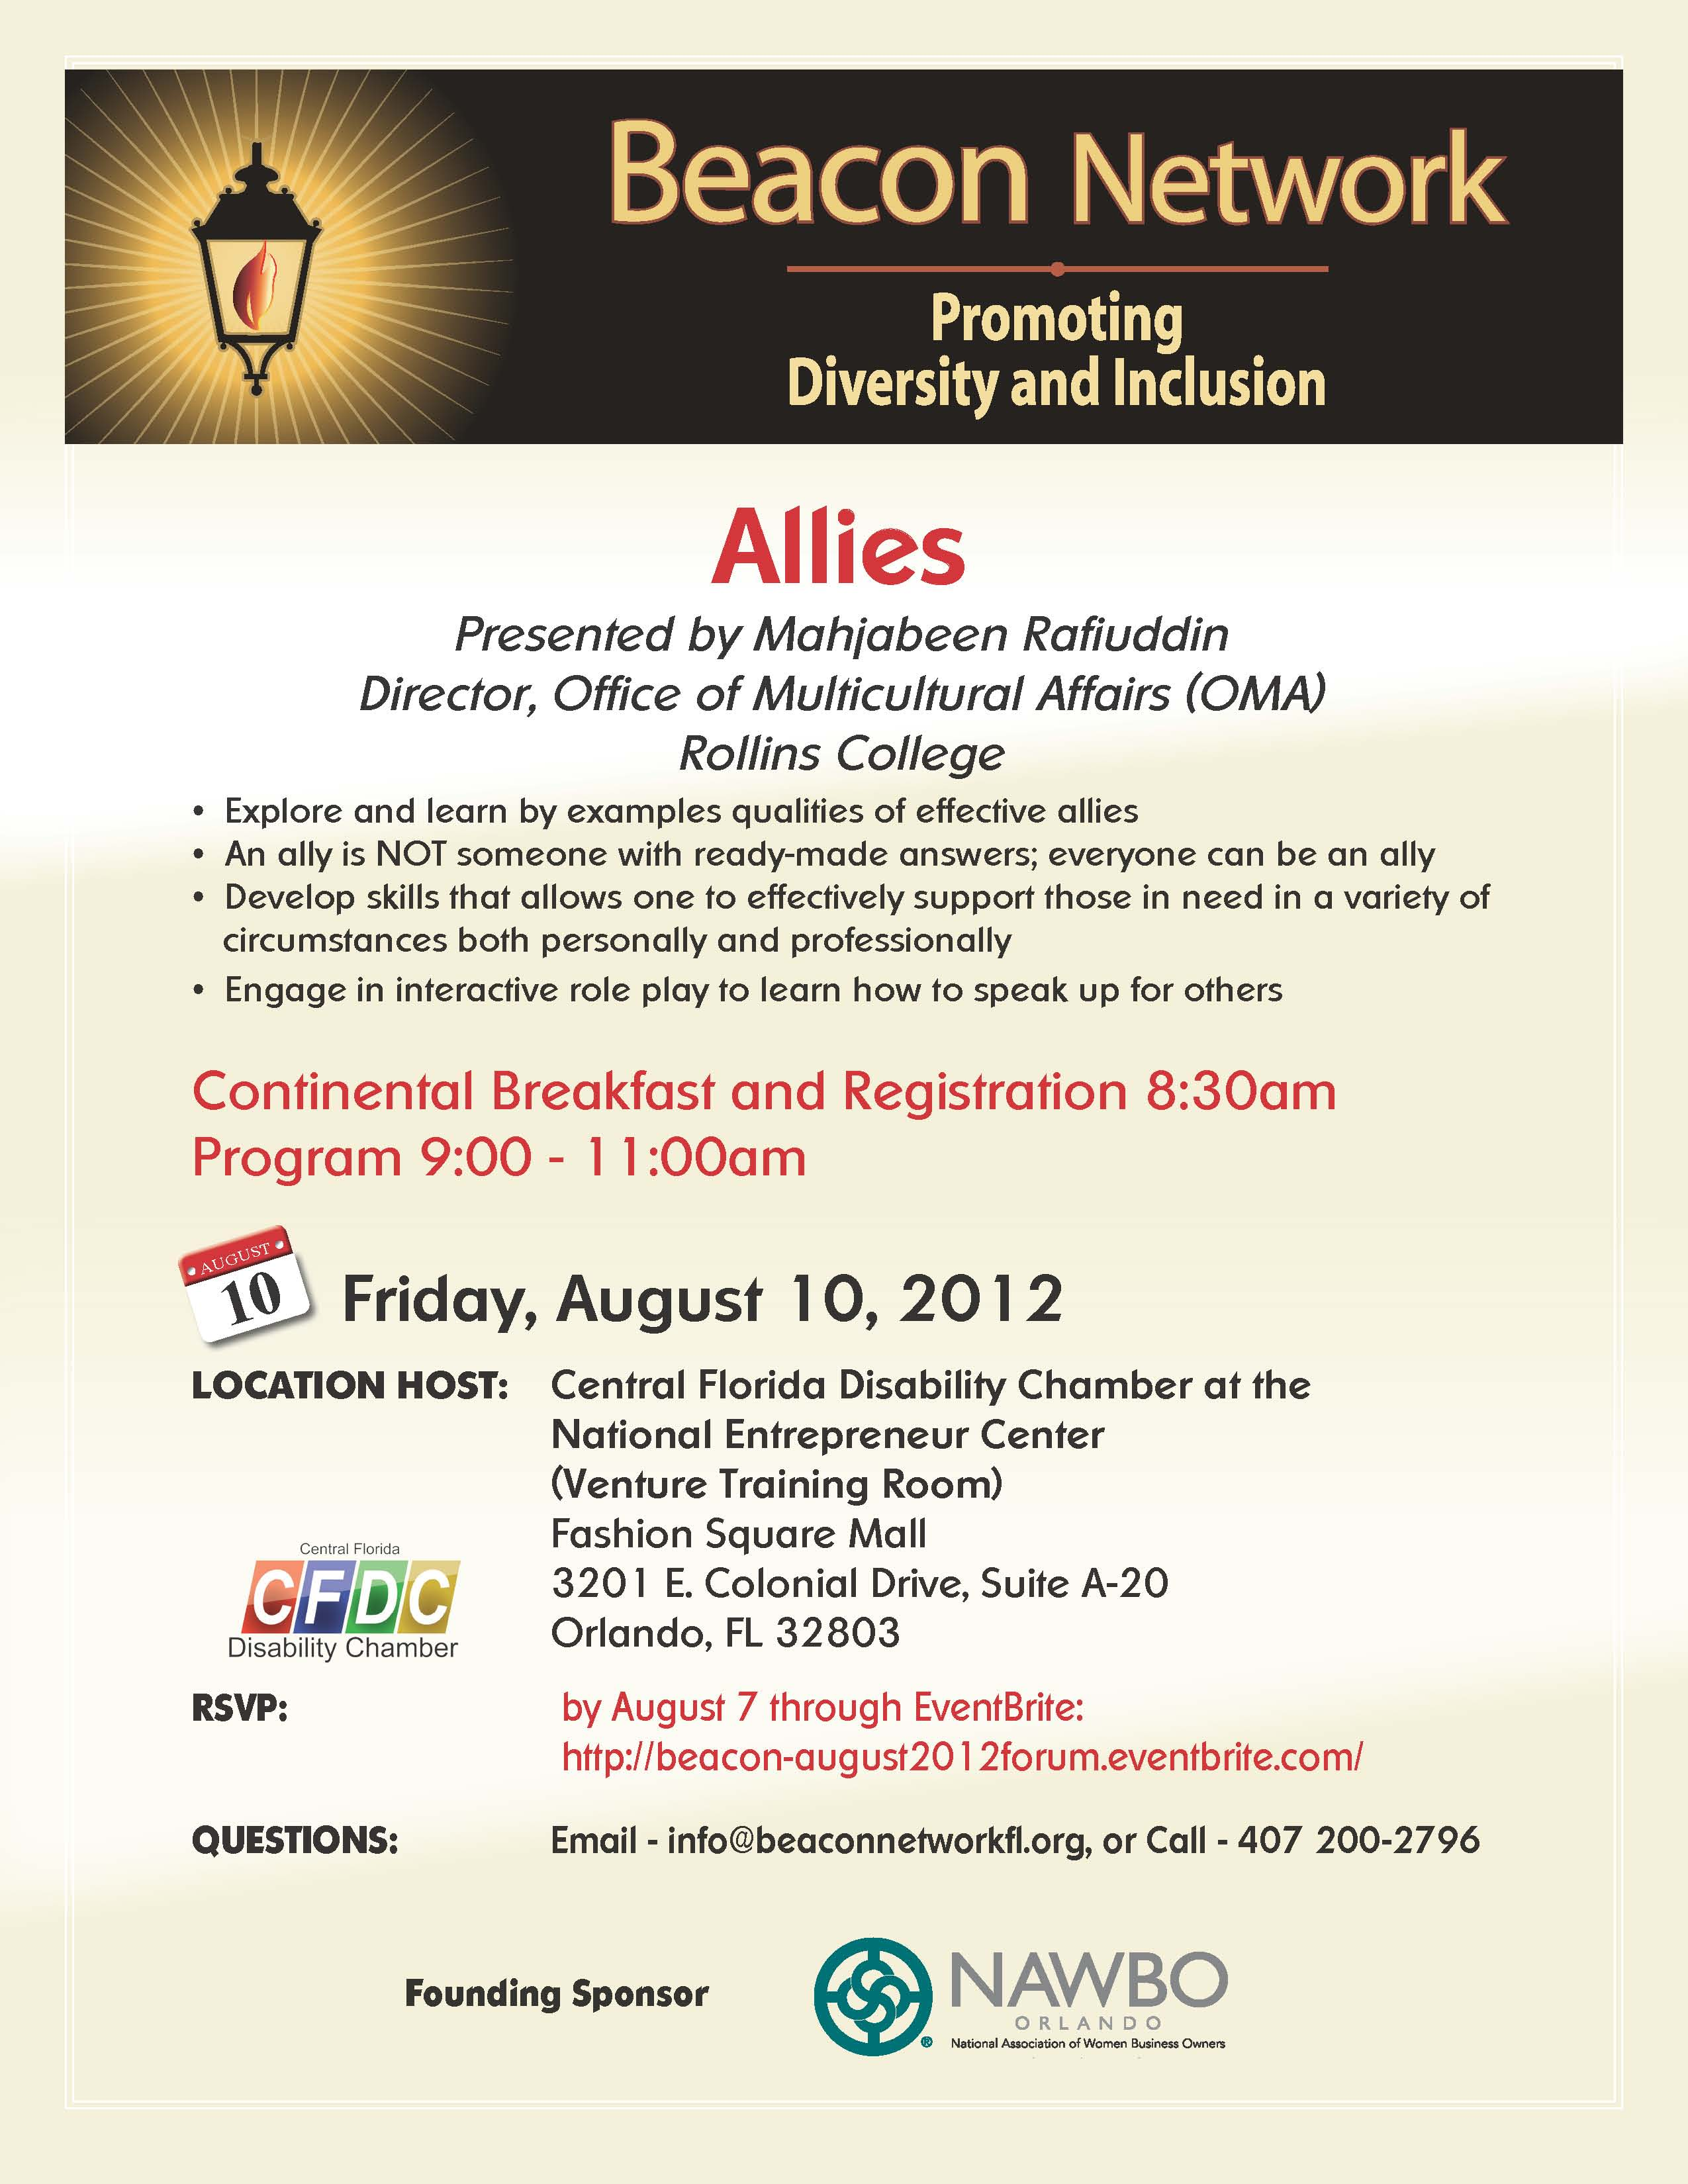 The Beacon Network August 10, 2012 Forum Event Flyer